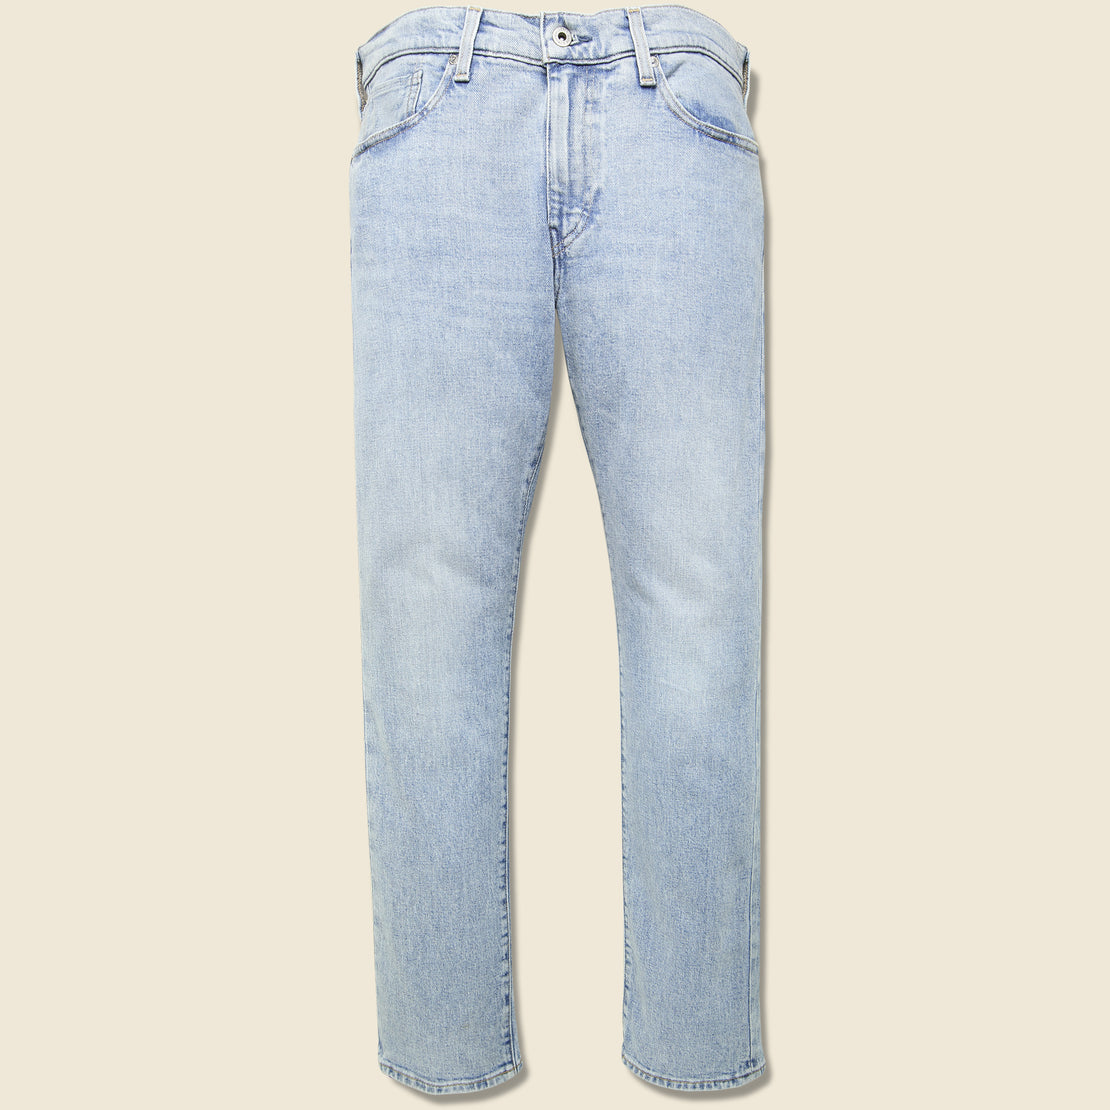 Levi's Made & Crafted 511 Slim Fit Jean - Horizons